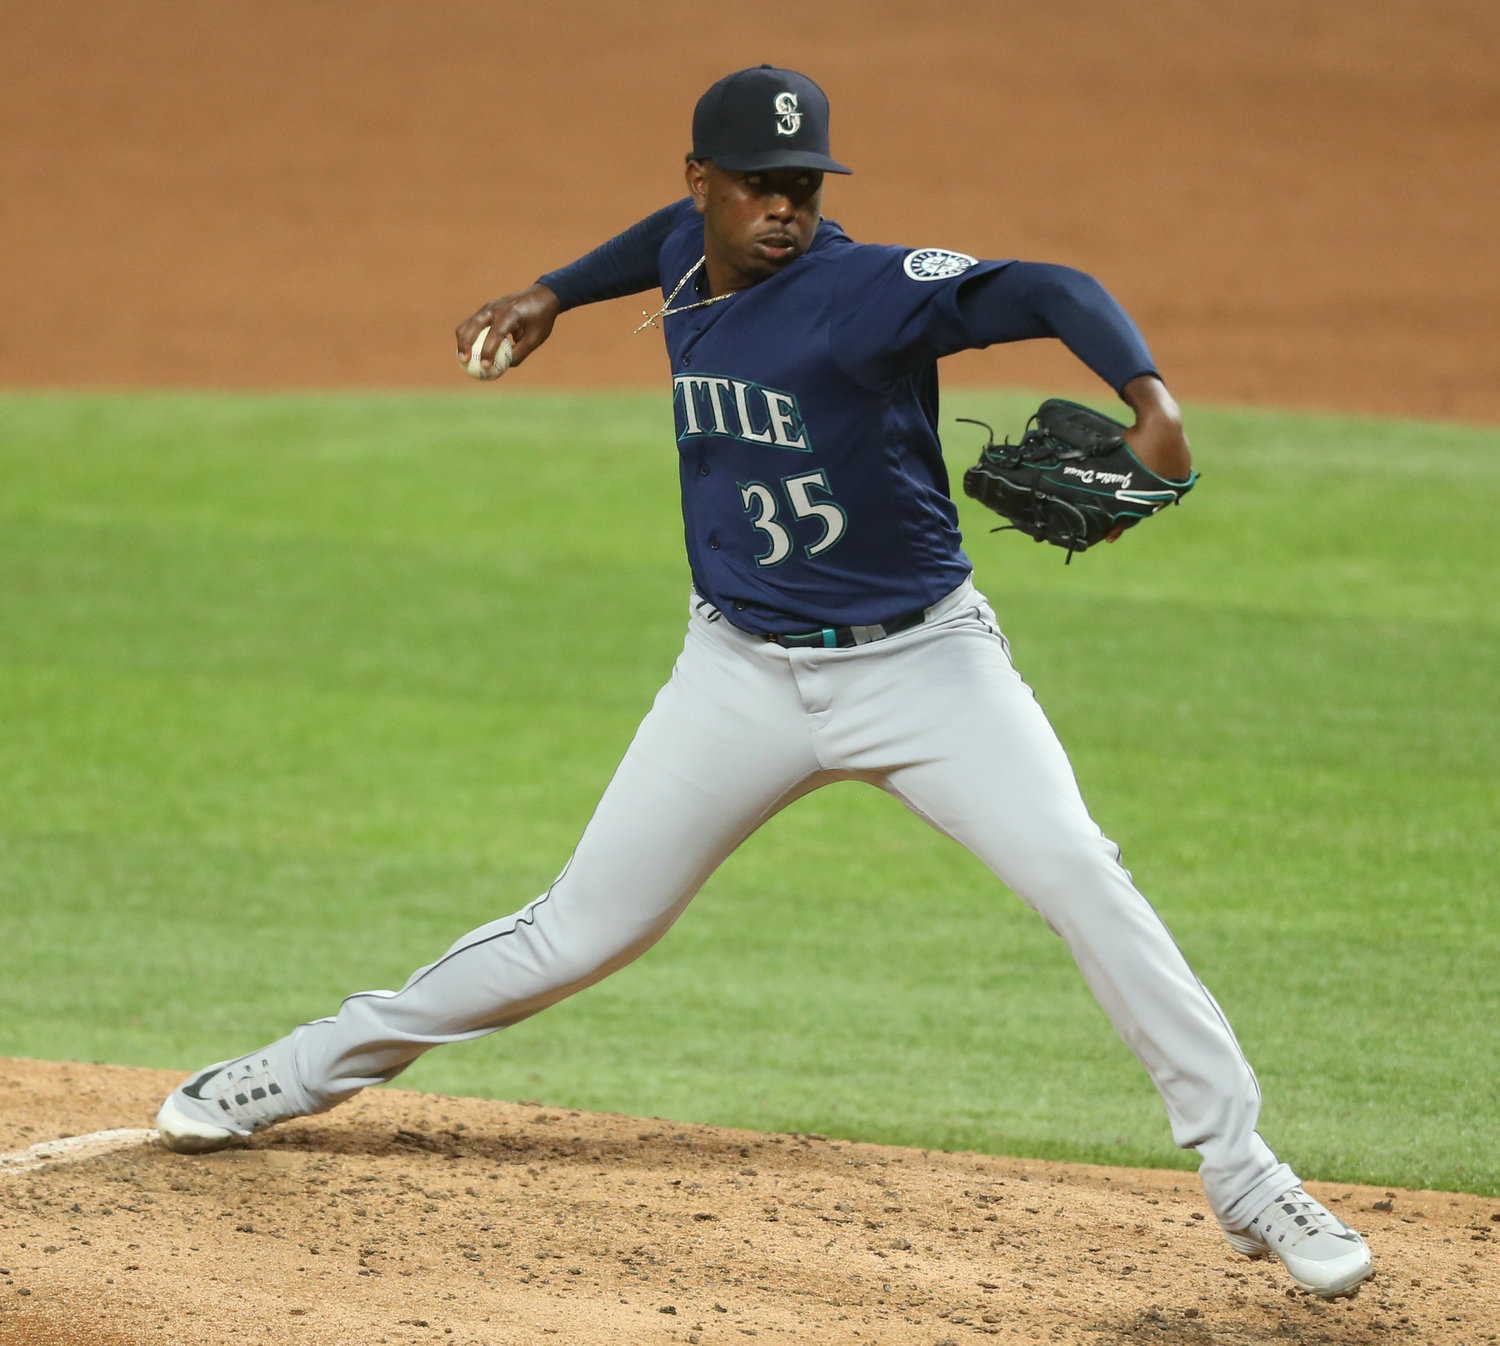 Justin Dunn, who was traded by the Mets to Seattle in 2019, earned the first win of his MLB pitching career on Aug. 10.